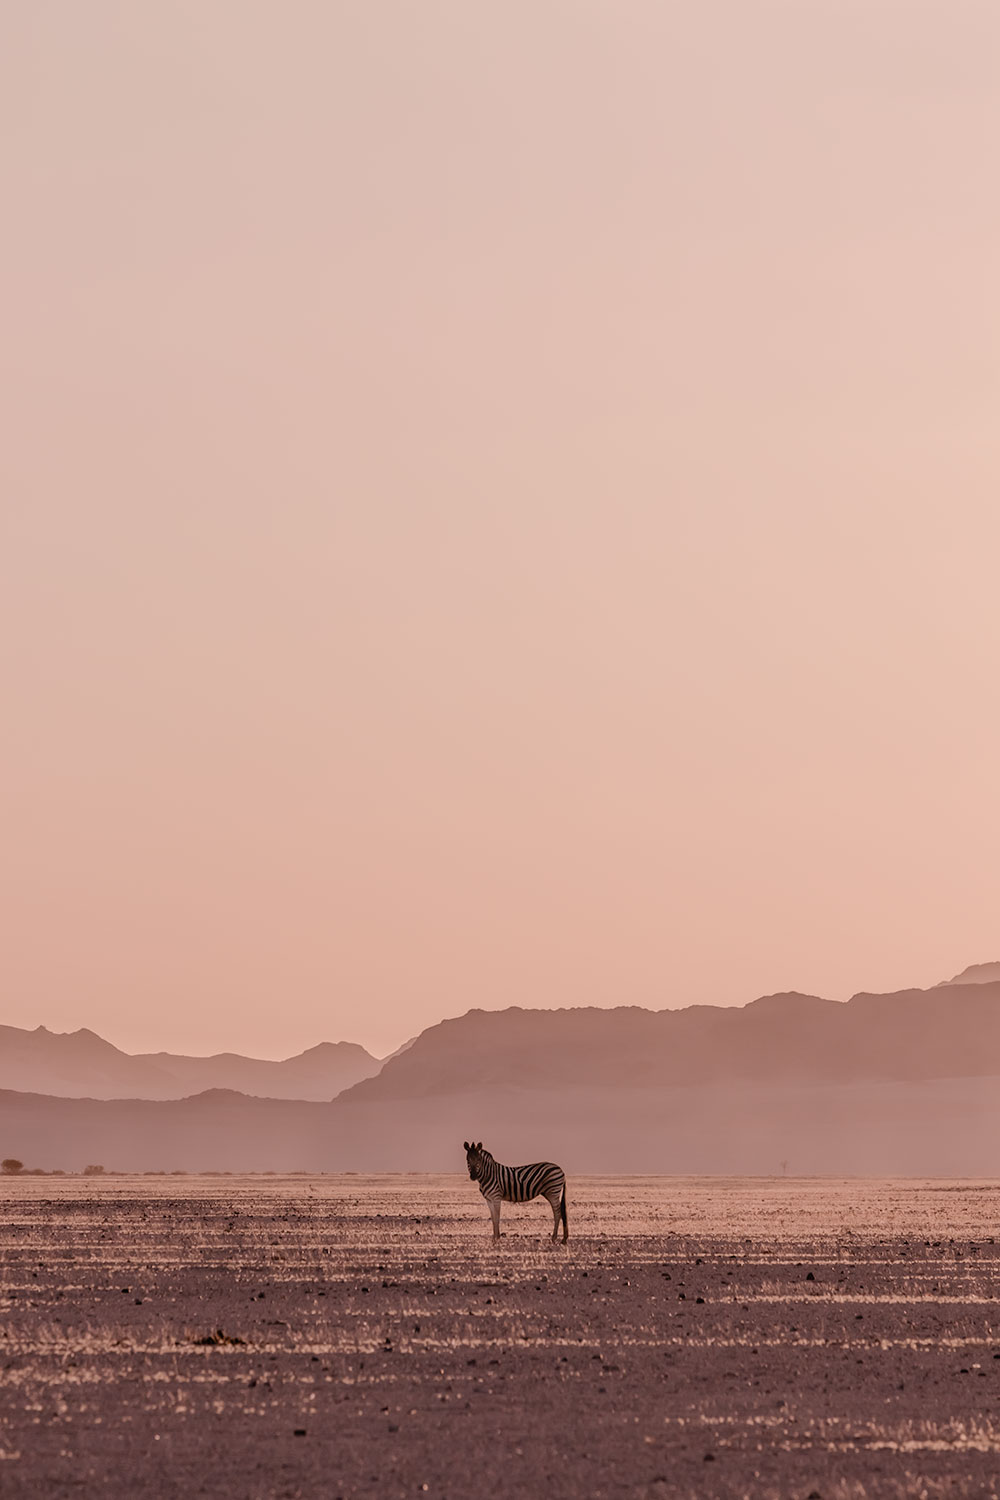 No shortage of Zebra spotting when spending 2 days in Sossusvlei